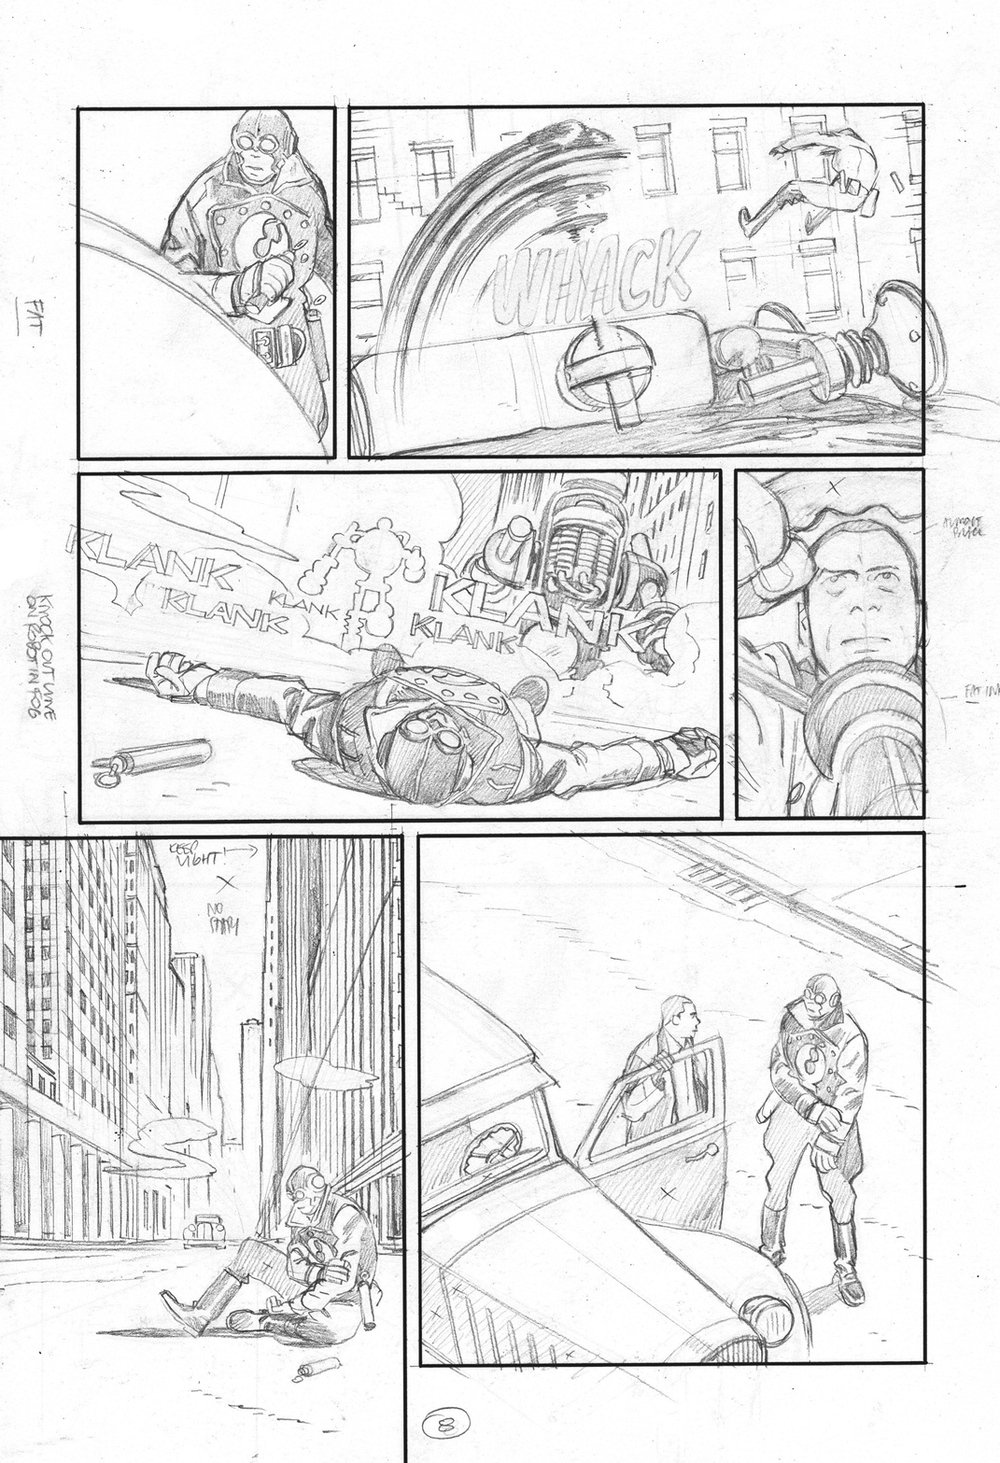 lobster_V_01_pencils_pg_08_web.jpg